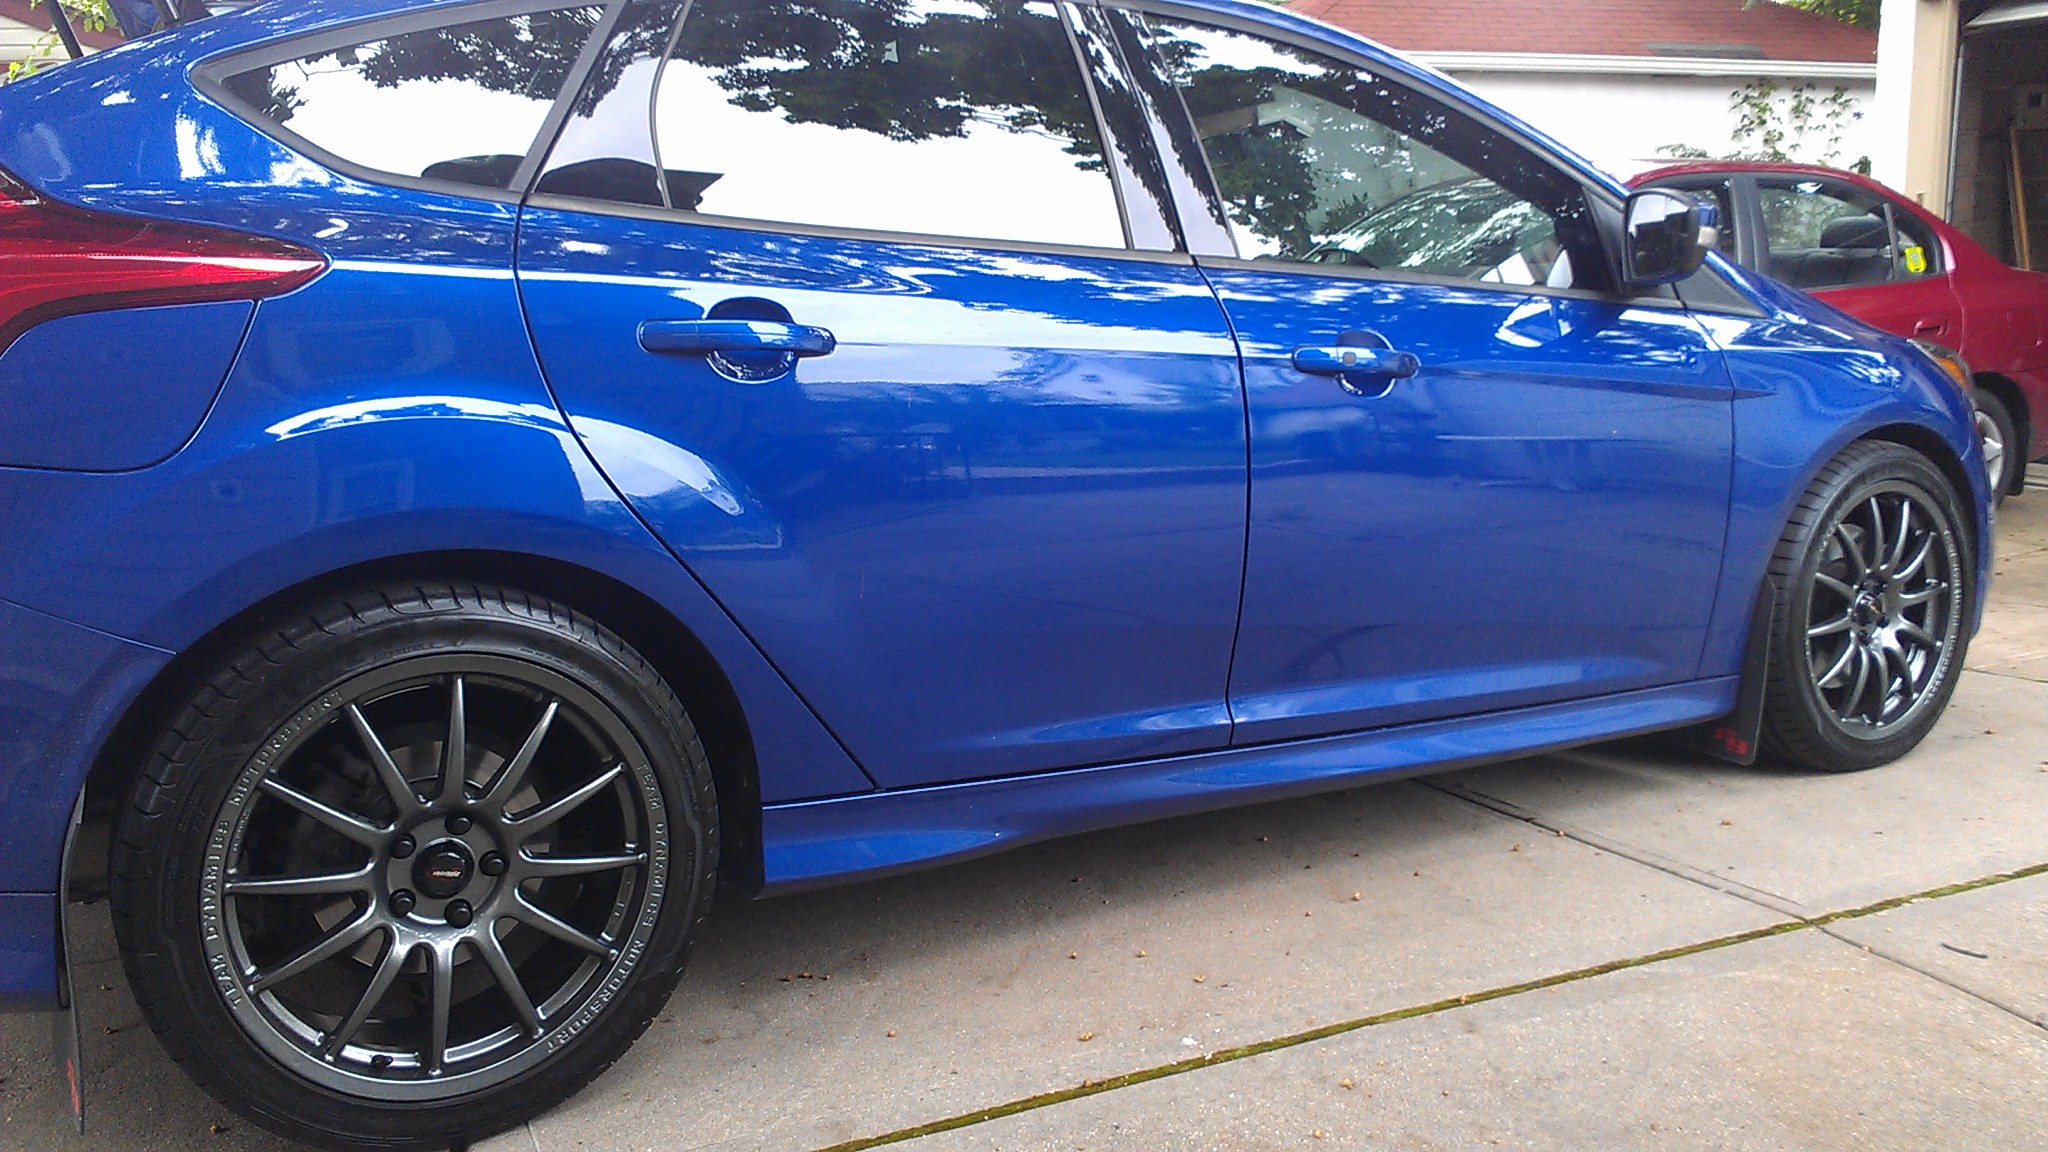 Aftermarket Wheels On Performance Blue Only